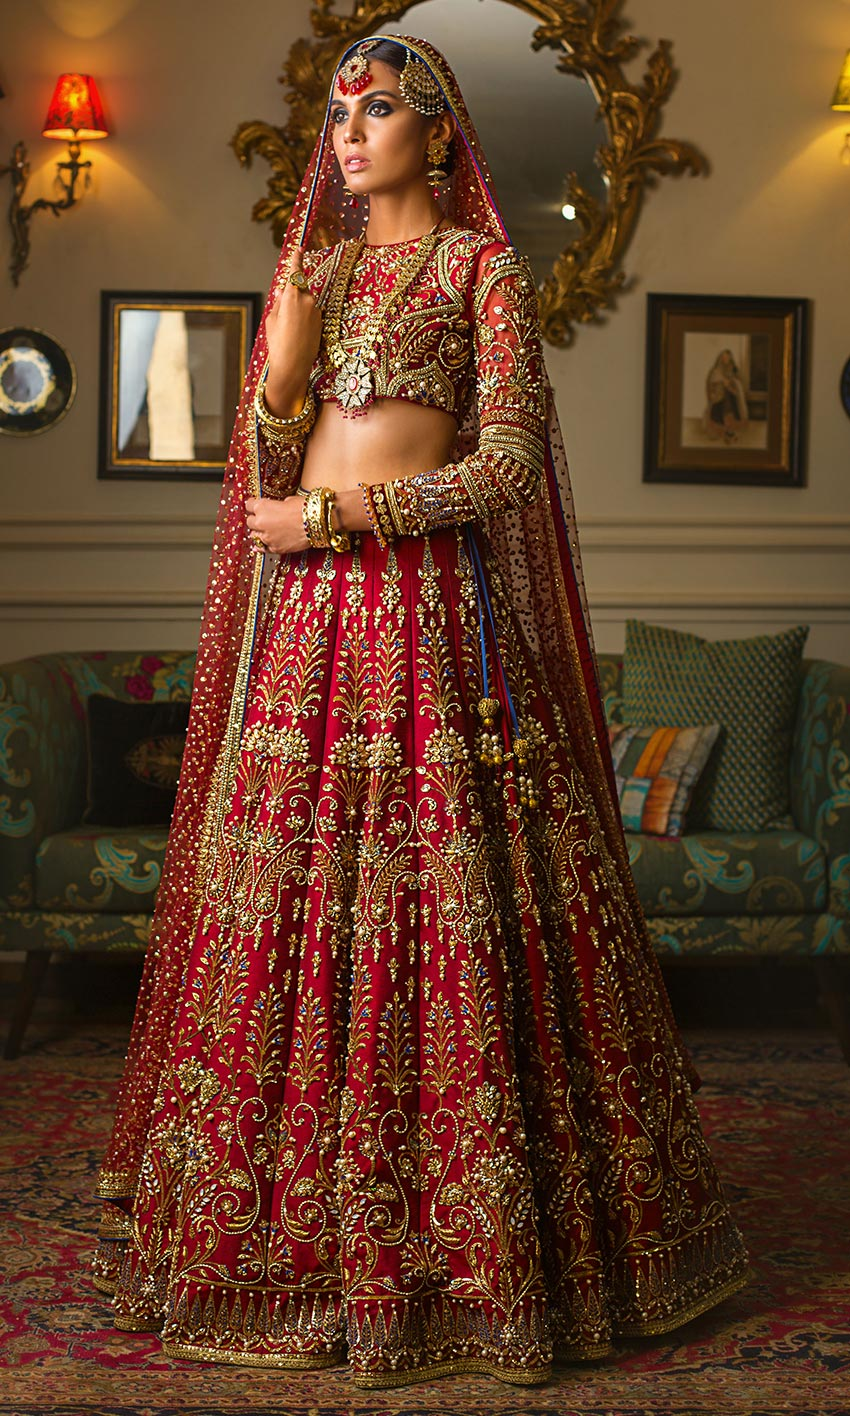 Latest Pakistani Bridal Dresses 2020 Collection For Wedding With Prices 8,Used Wedding Dresses For Sale Online India